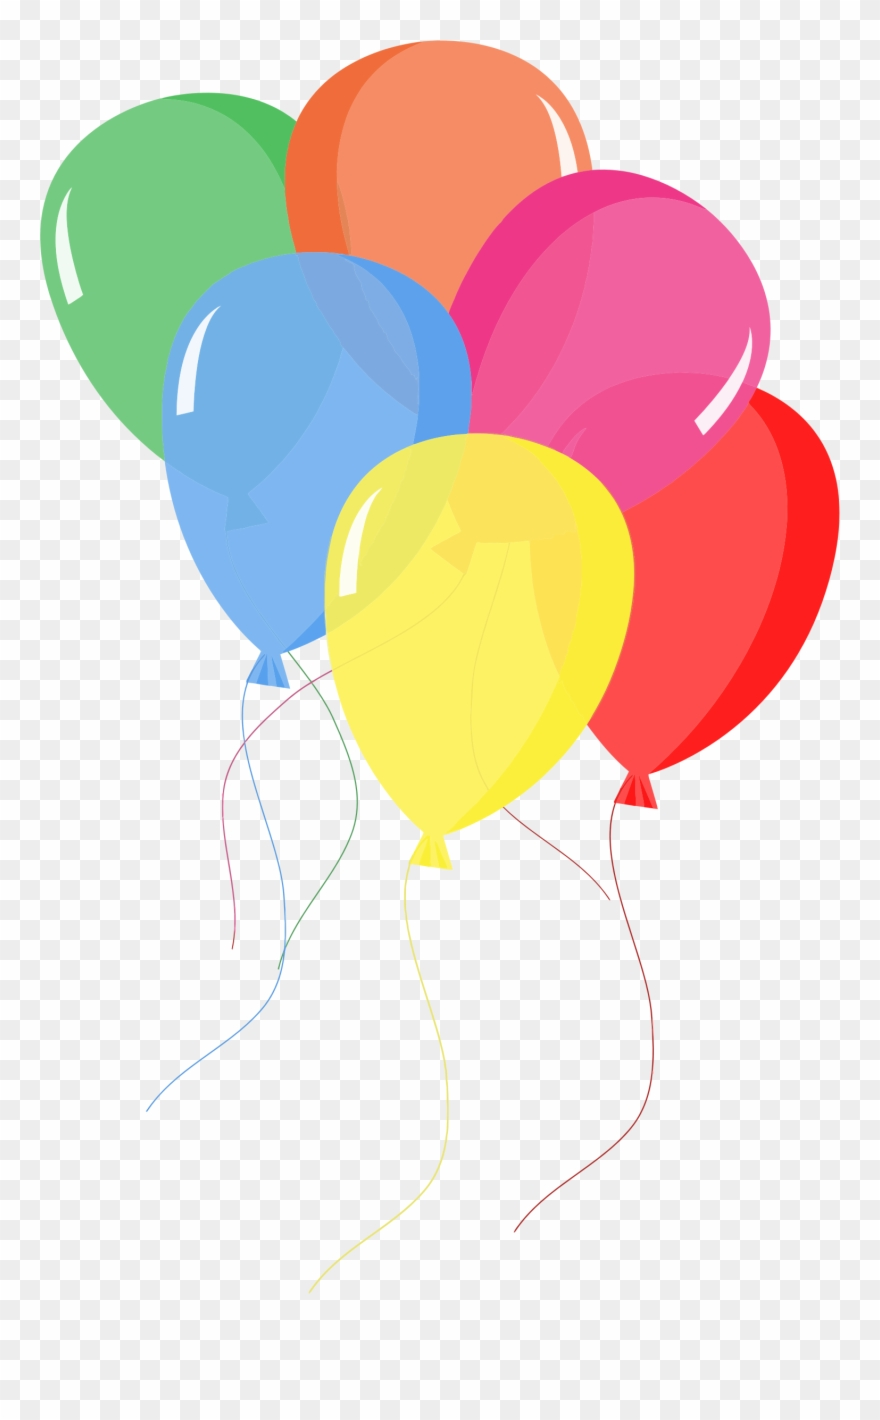 Balloons clipart microsoft graphic freeuse stock Microsoft Balloons Clipart - Balloons Clipart - Png Download (#77191 ... graphic freeuse stock